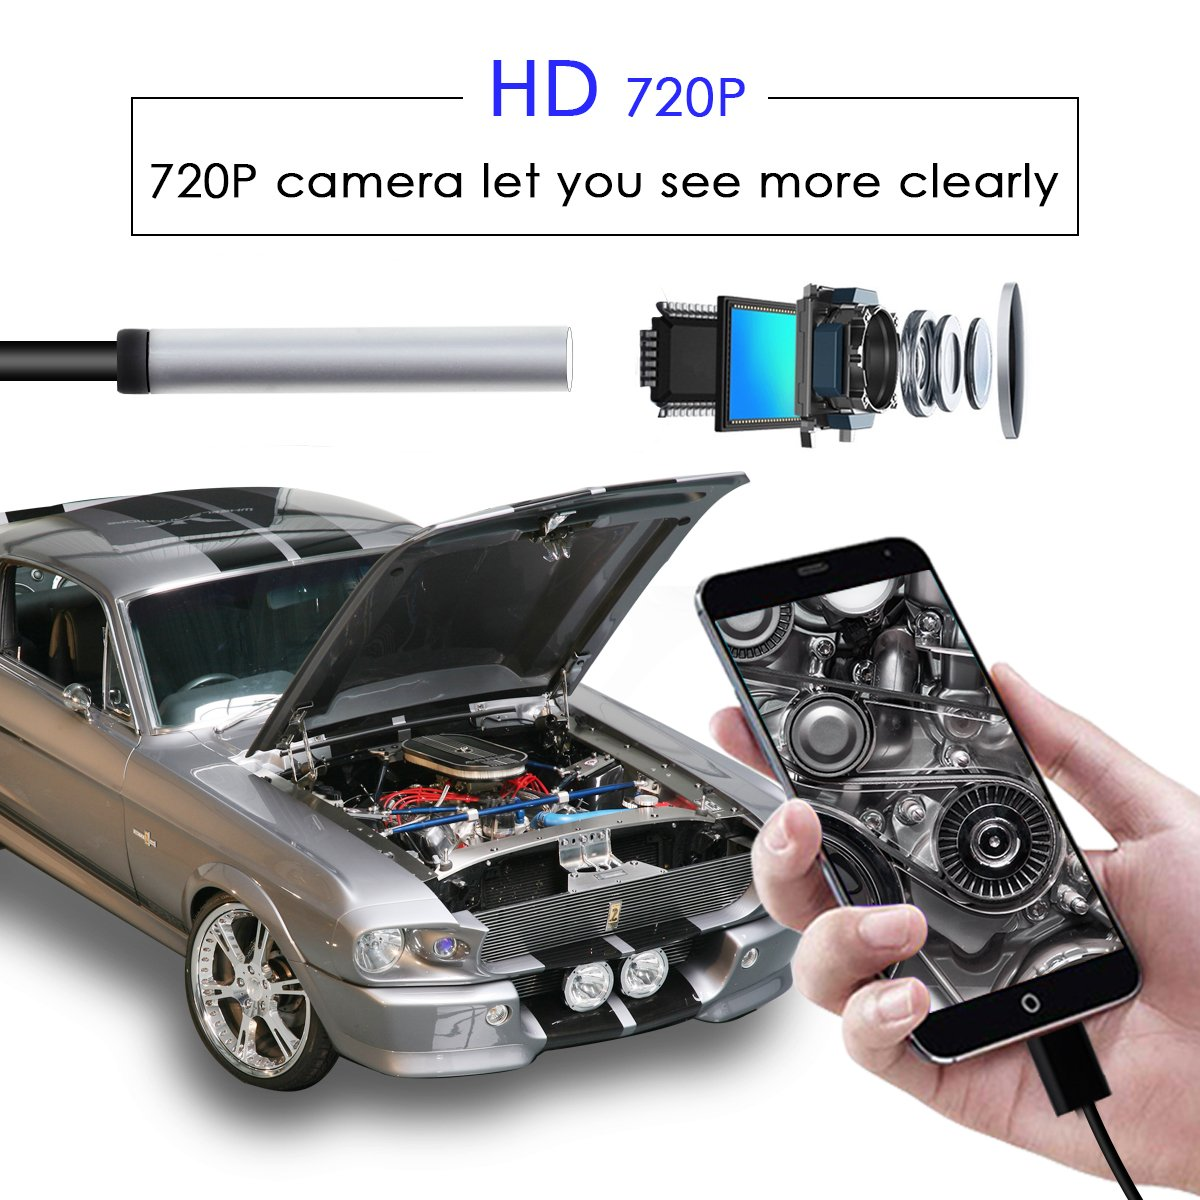 HD 5.5mm5M Endoscope Shekar 2 M/égapixels Semi Rigide Android Endoscope 3 en 1 USB//Micro USB//Type-C Borescope Cam/éra dinspection /étanche pour Smartphone Tablet avec OTG et UVC fonction